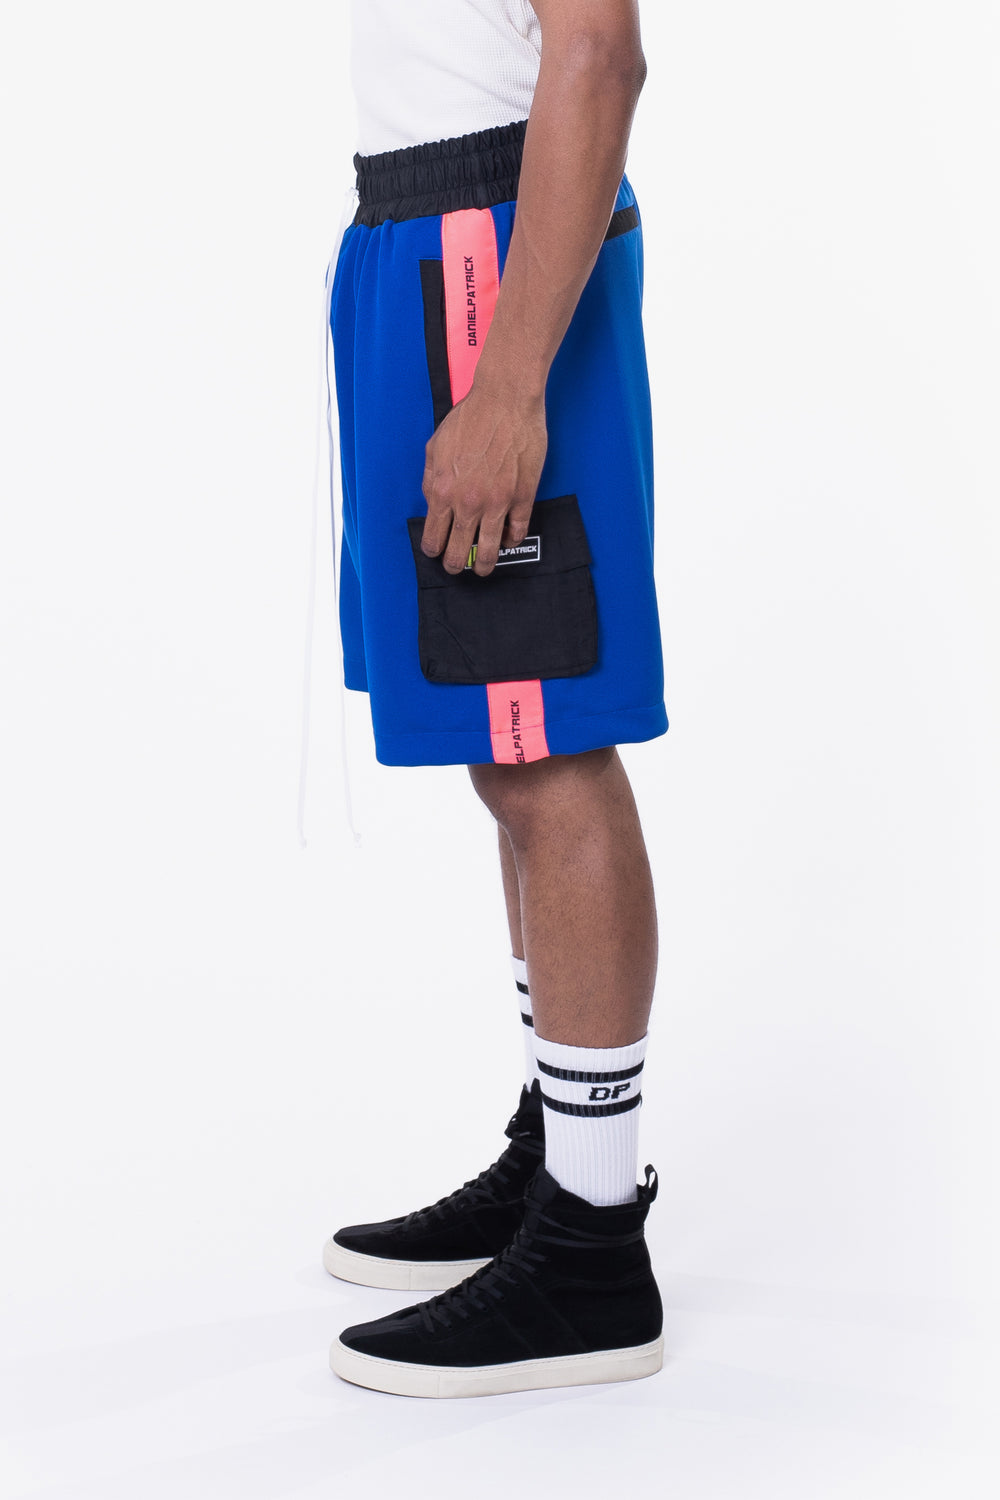 cargo gym short / cobalt + neon pink + black